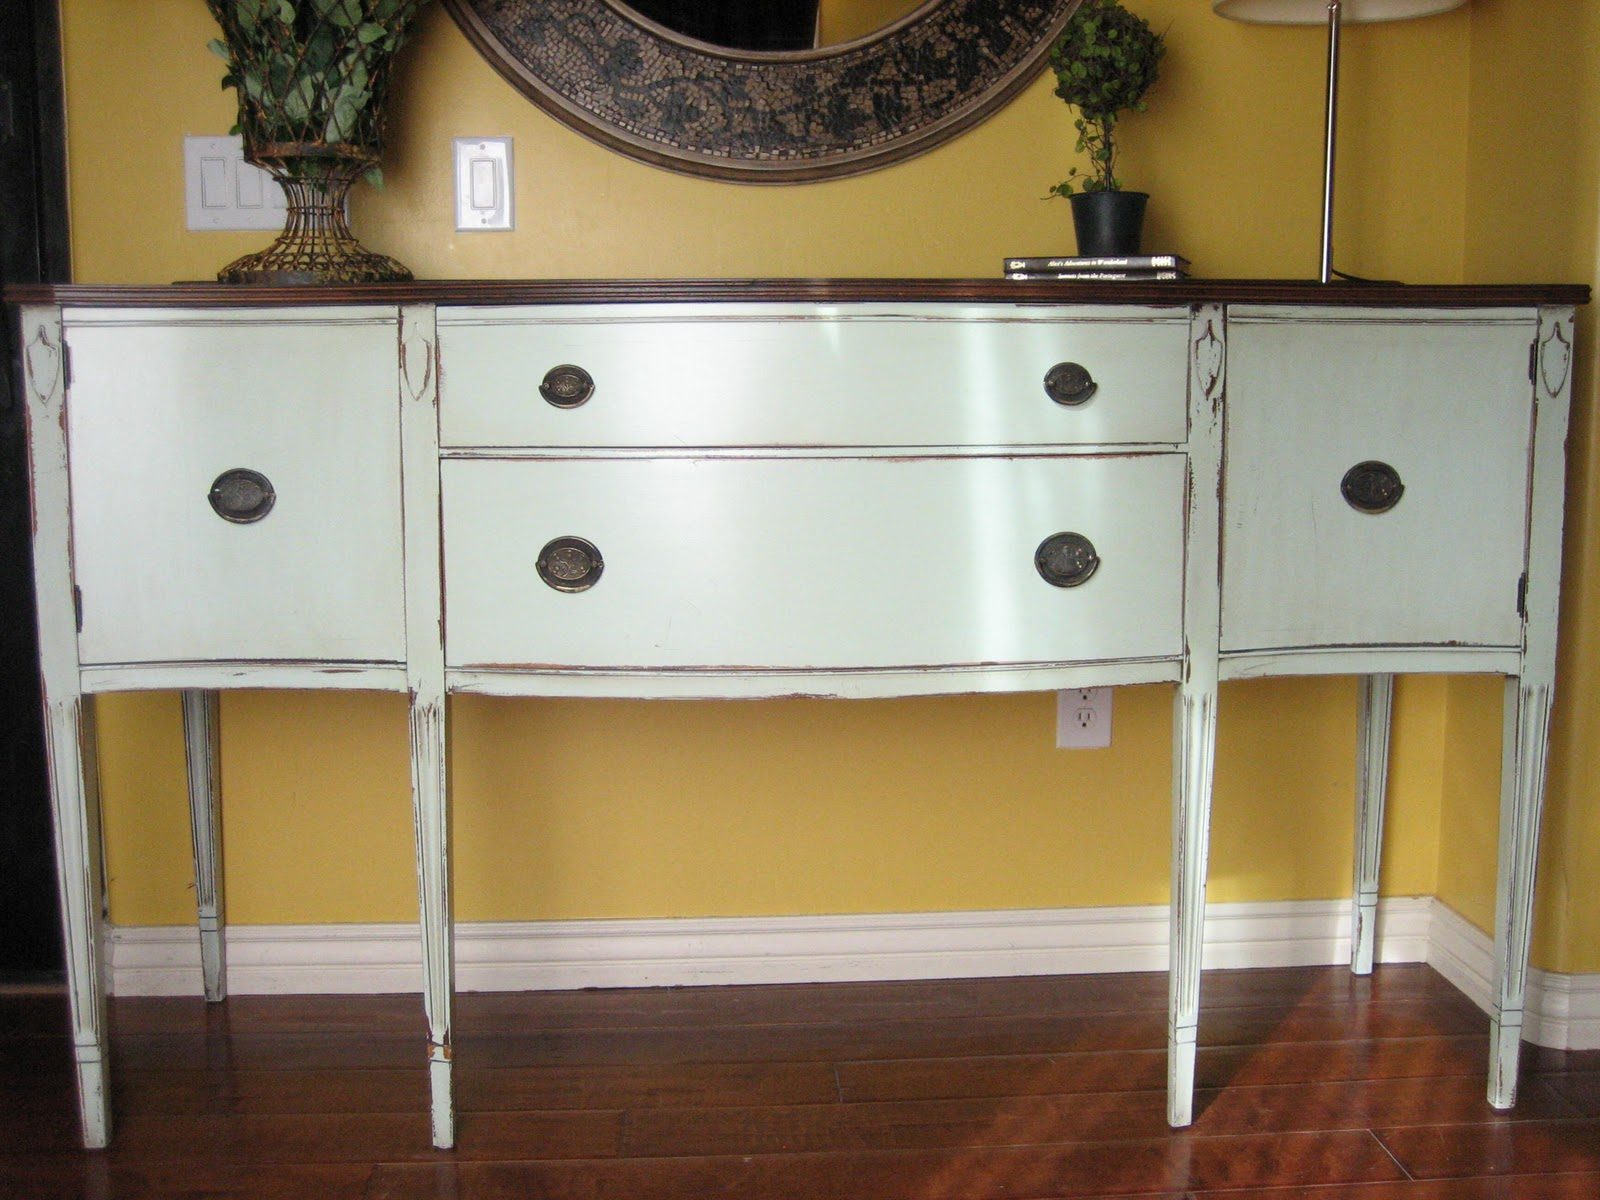 European Paint Finishes ~ European Classic Vintage Sideboard